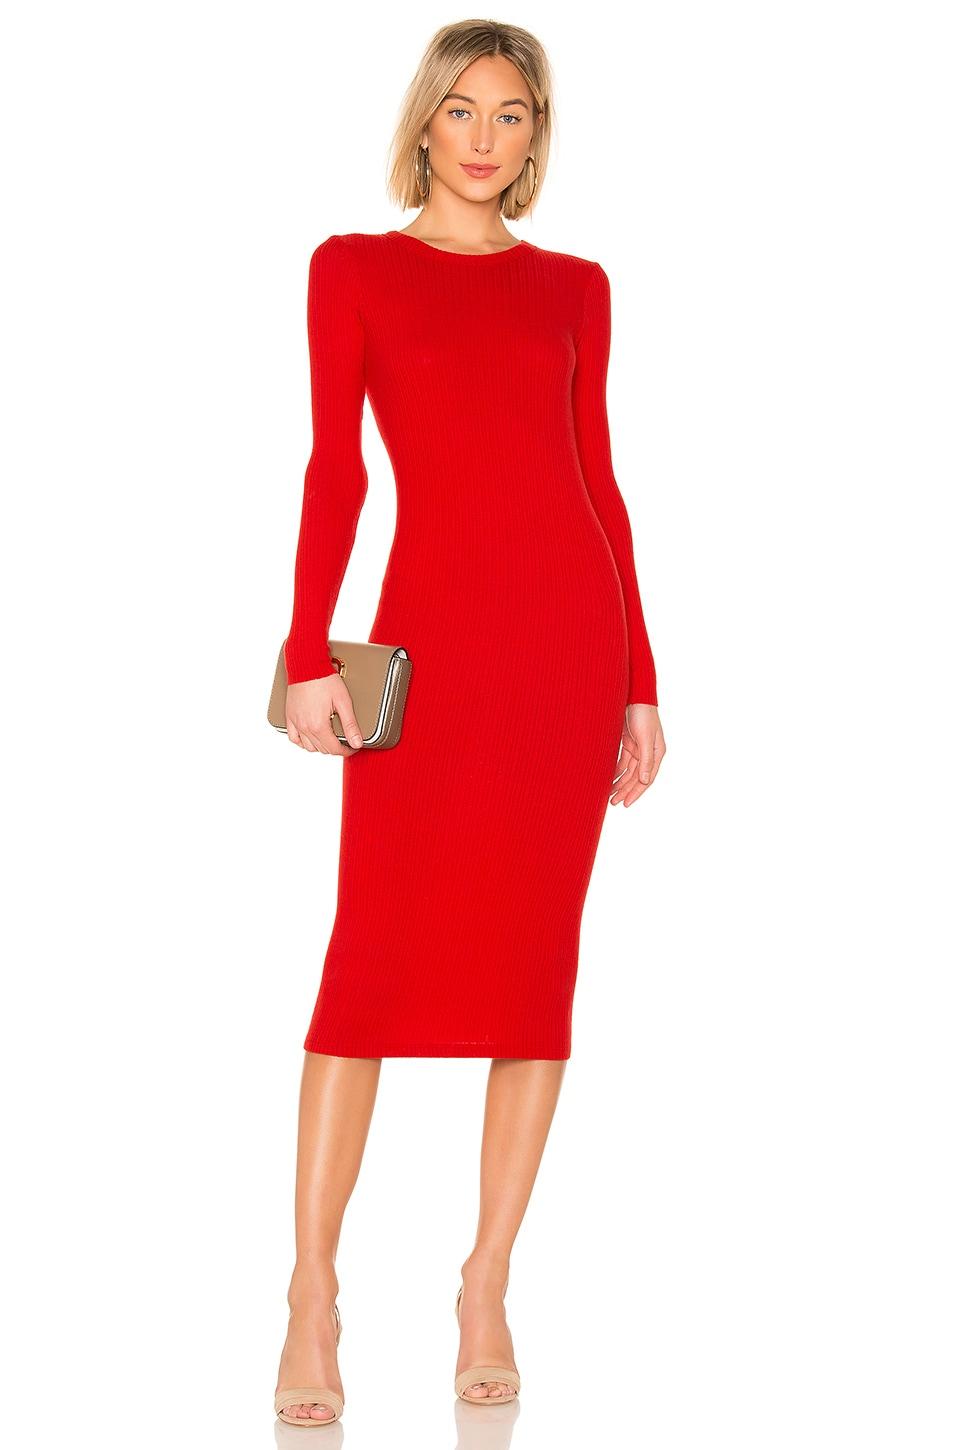 Enza Costa Rib Keyhole Midi Dress in Iconic Red